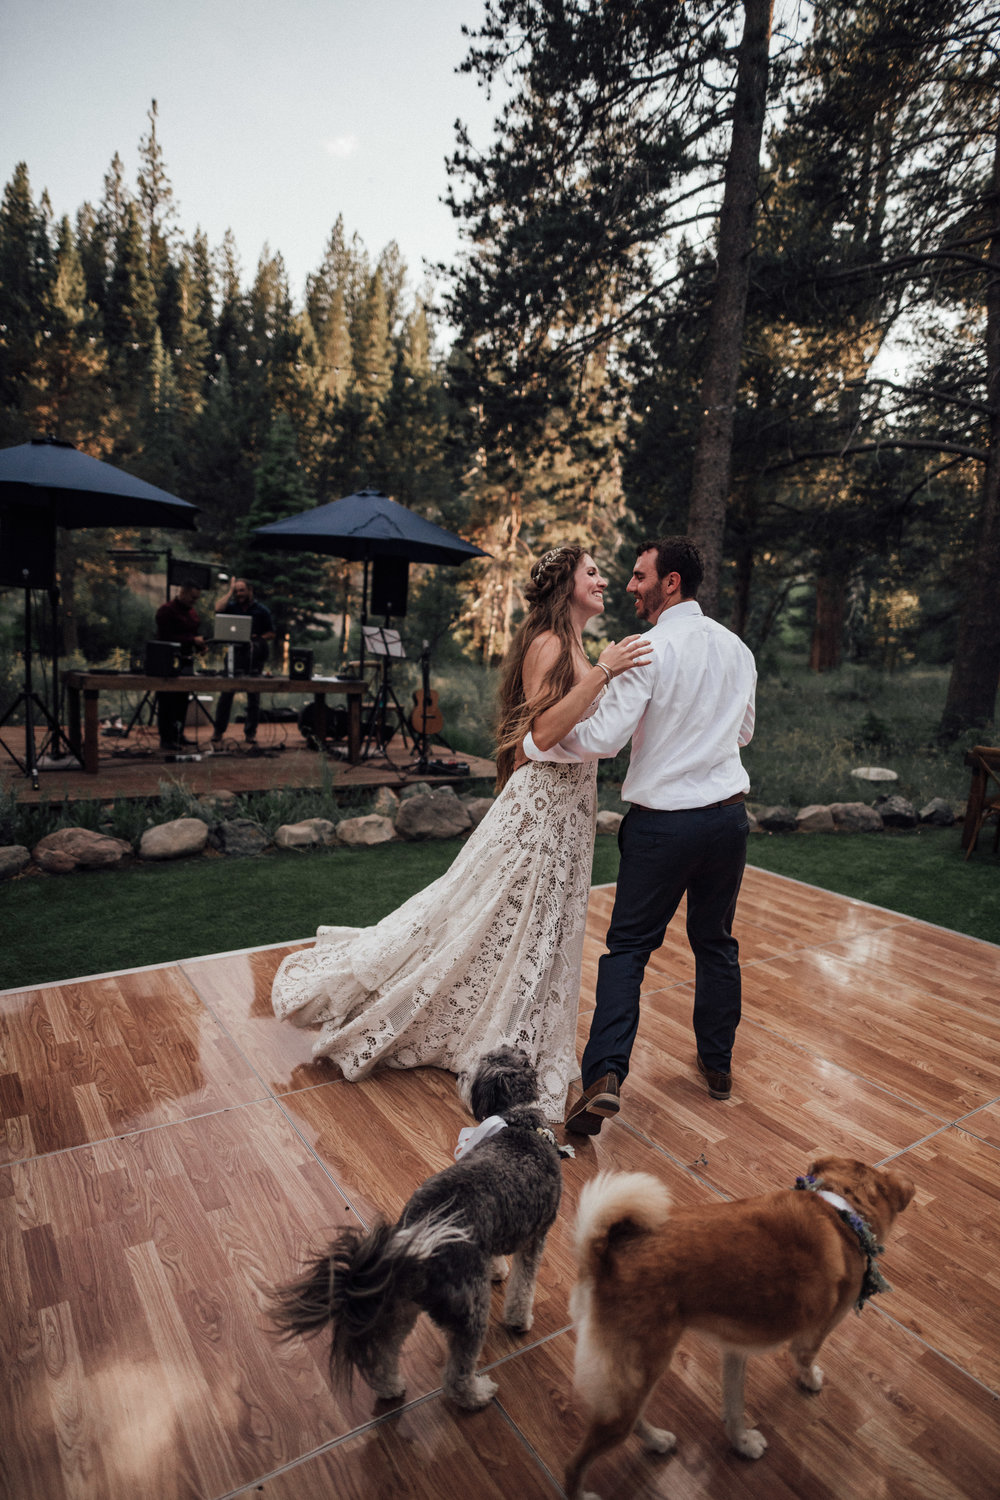 may-wedding-dancing-pines-sierraville-wedding-ca-danielle-kyle-junebug-photography-lake-tahoe-1-2257.jpg